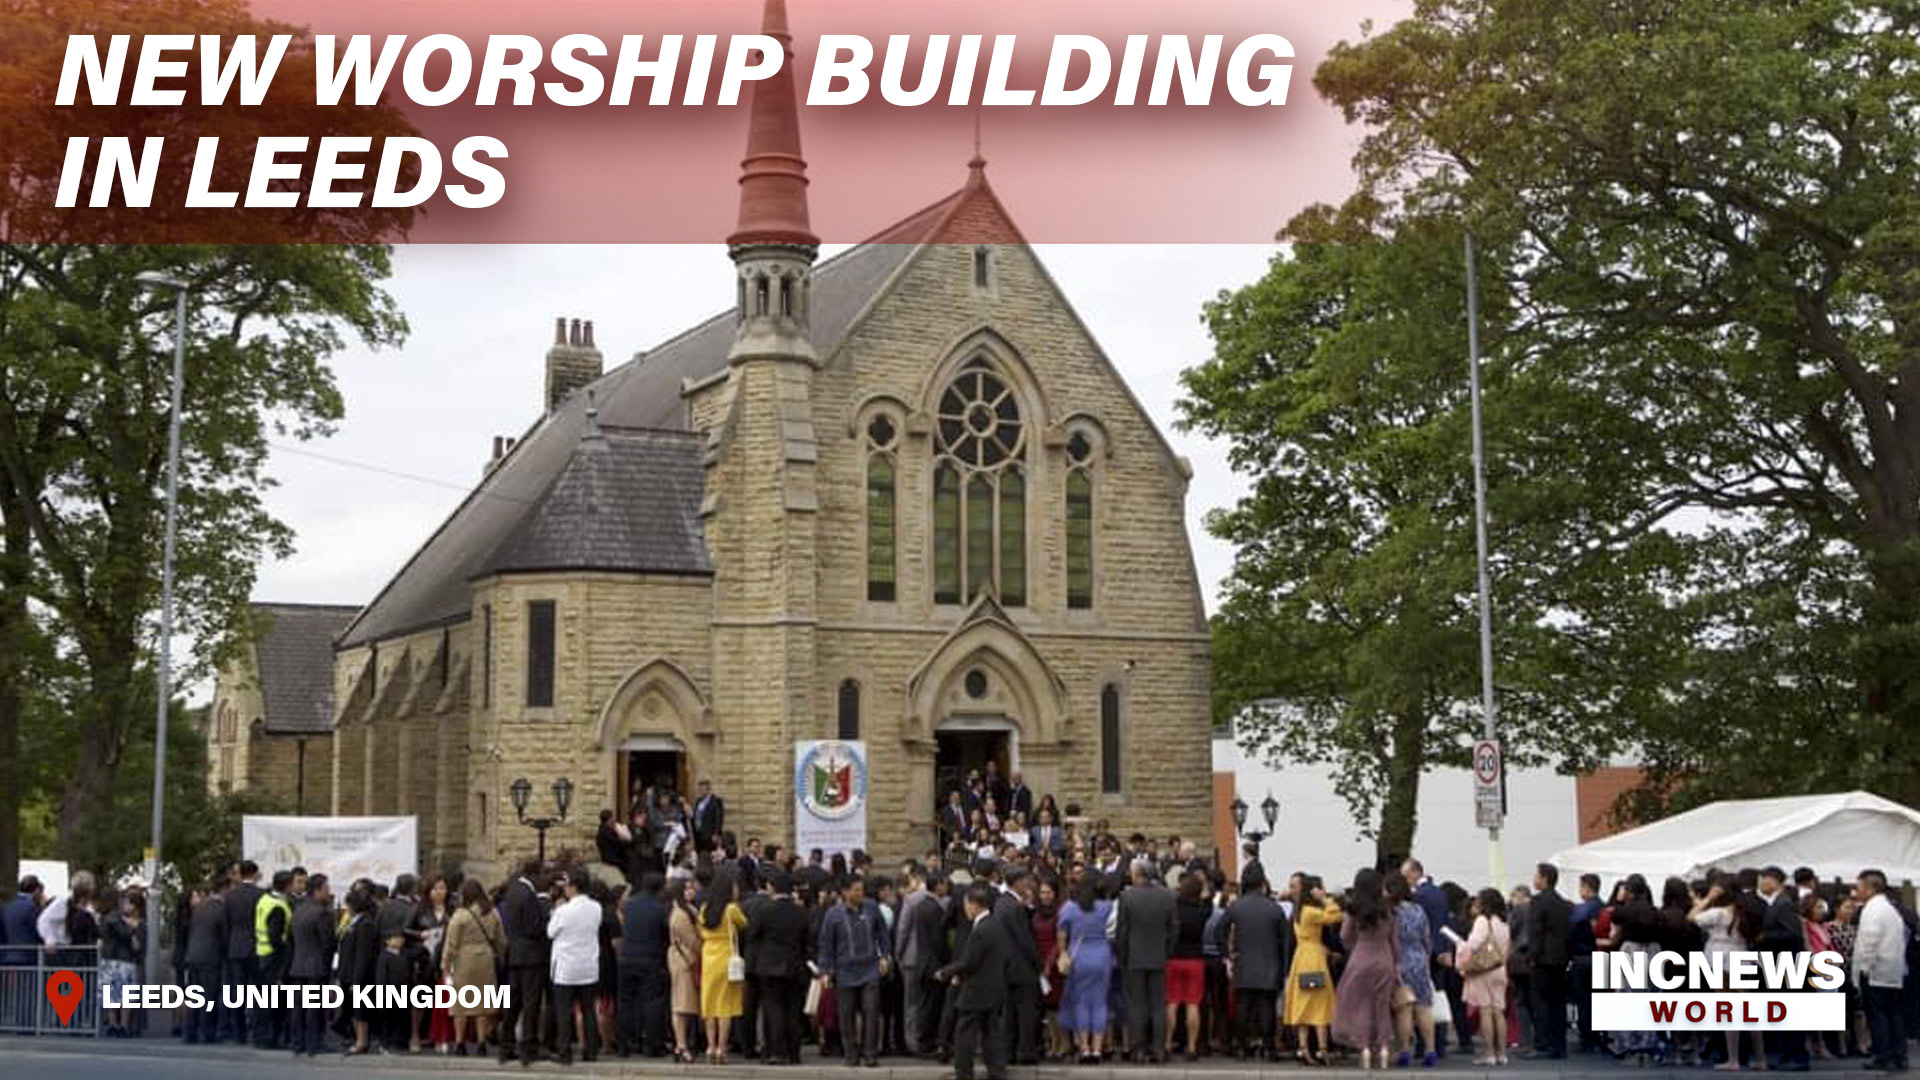 New Worship Building in Leeds